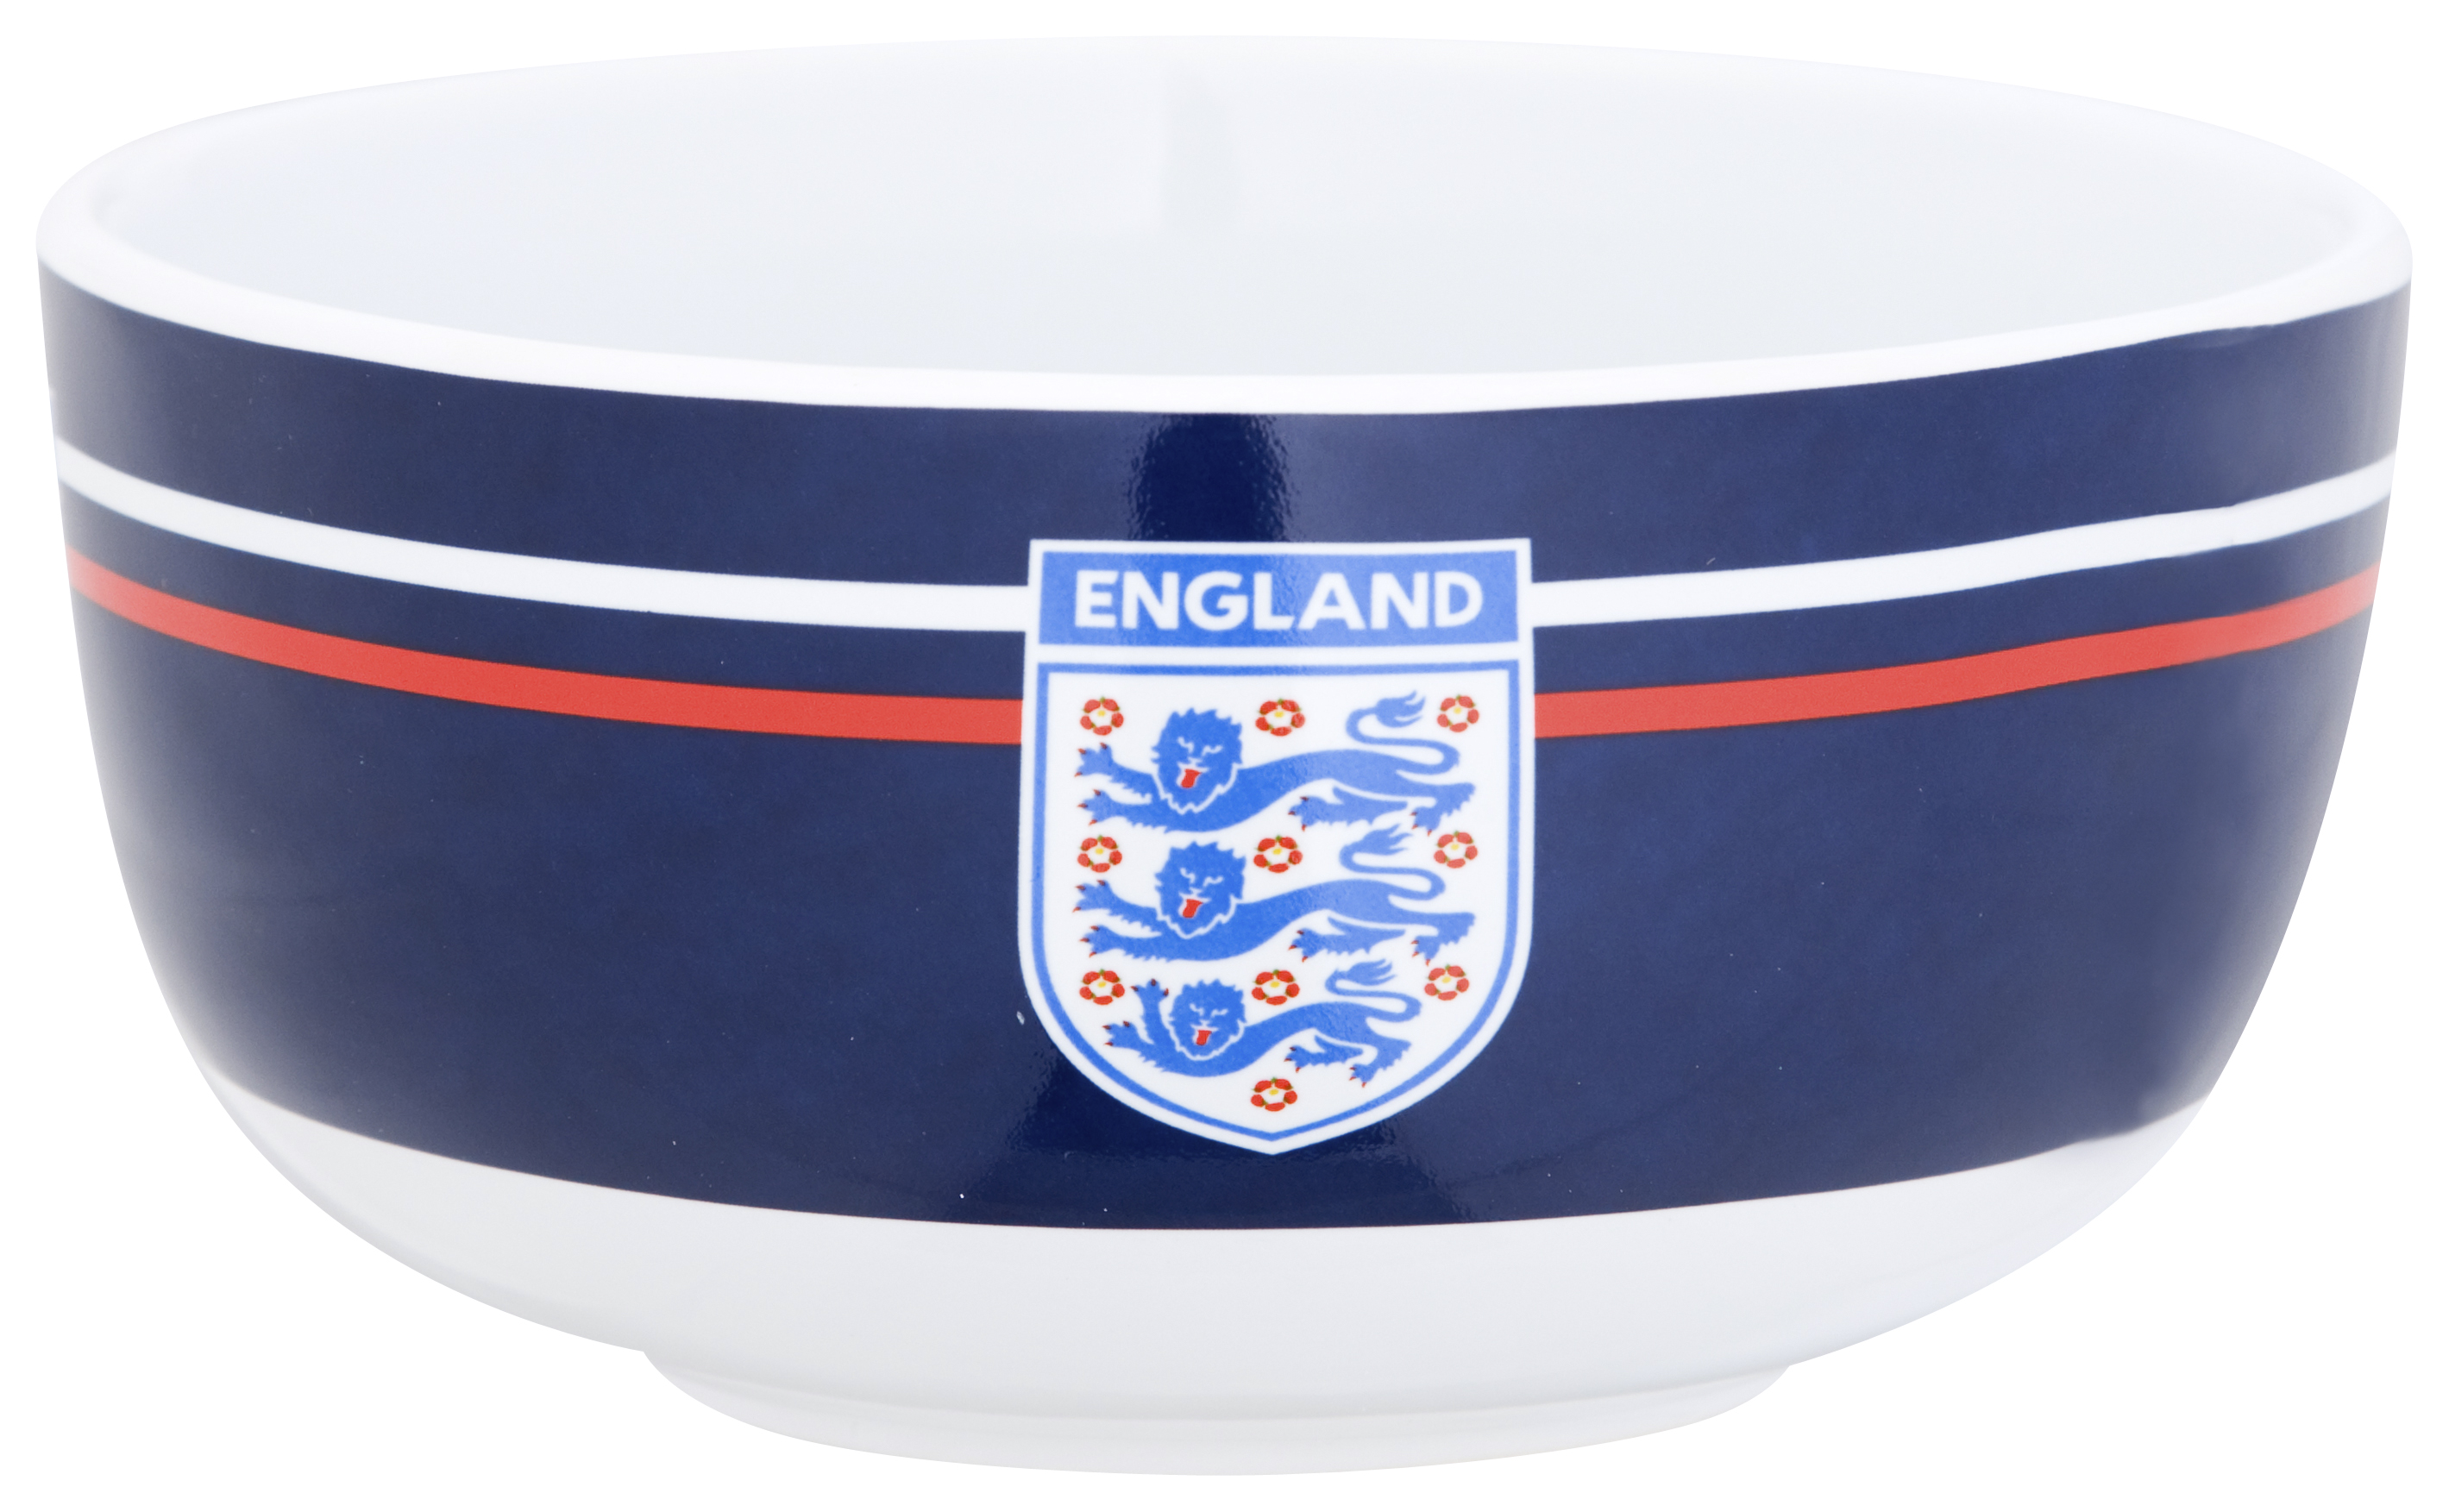 England FA Cereal Bowl